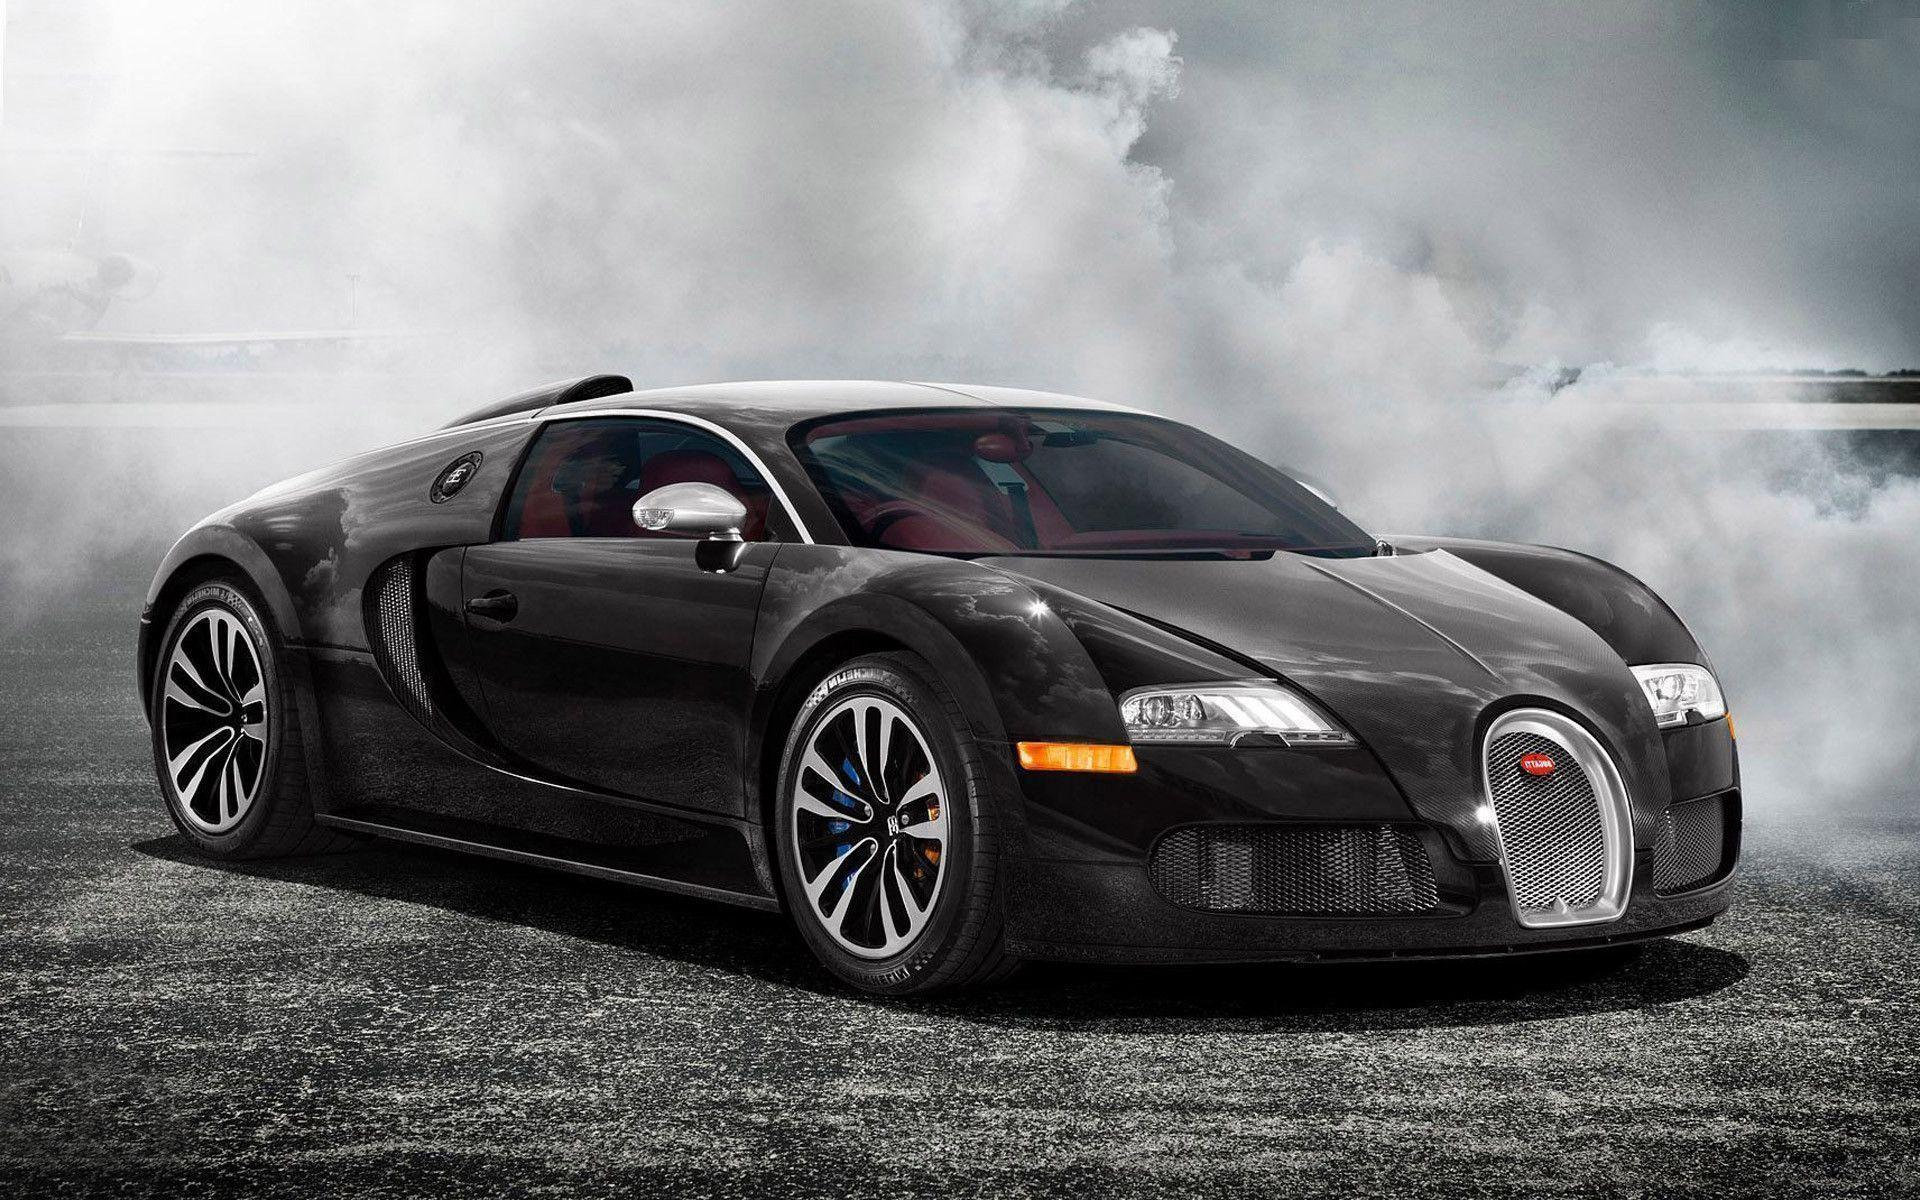 Black bugatti veyron wallpapers wallpaper cave - Bugatti veyron photos wallpapers ...